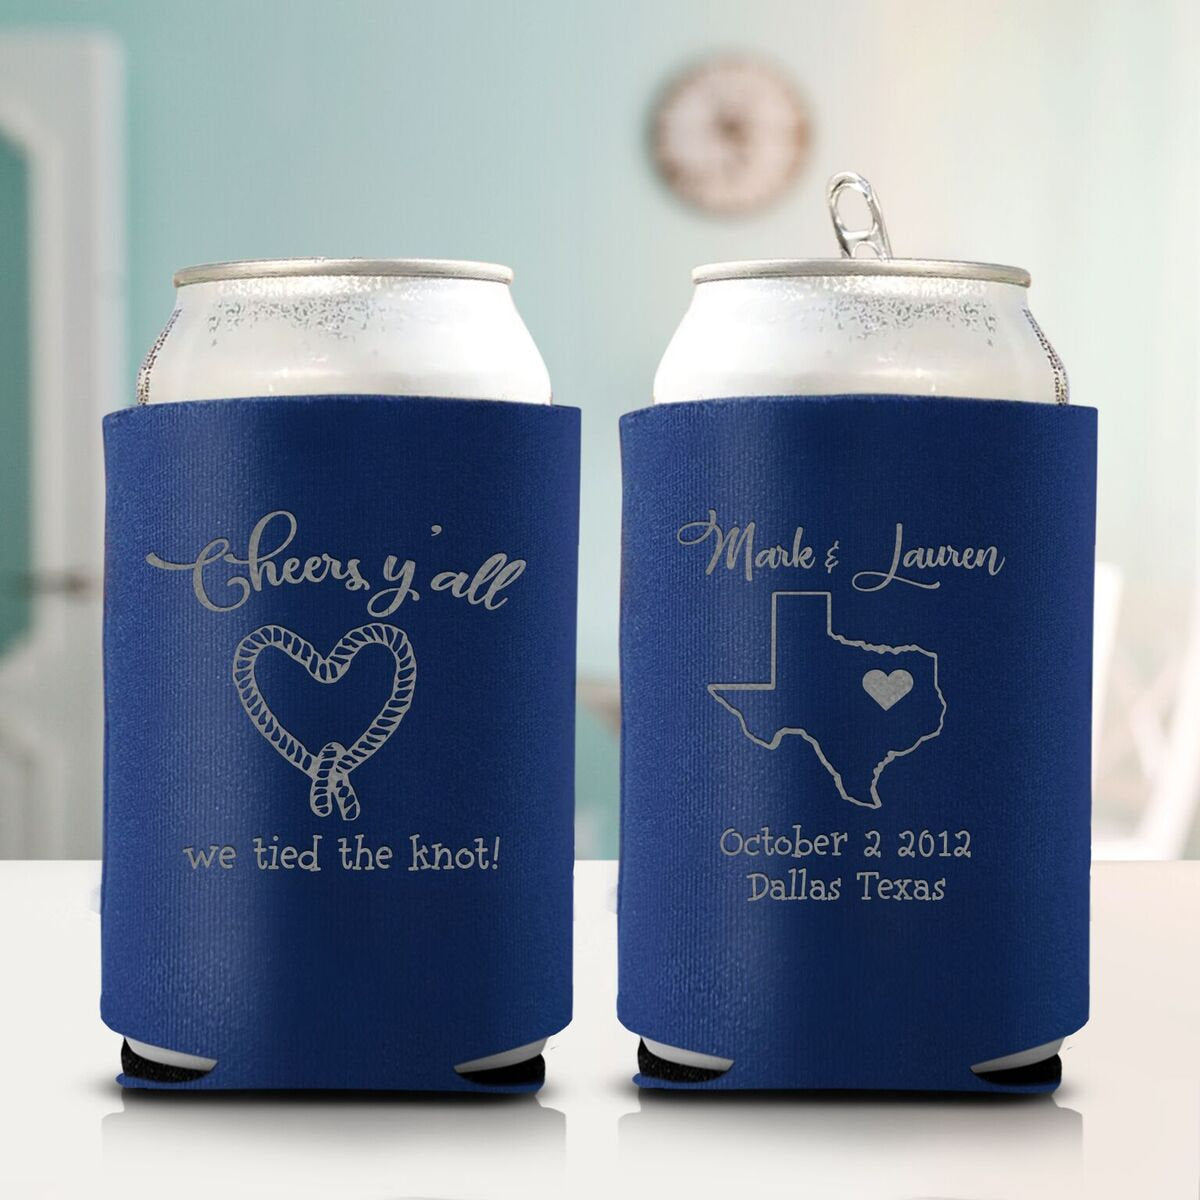 Cheers Y'all We Tied the Knot Koozie